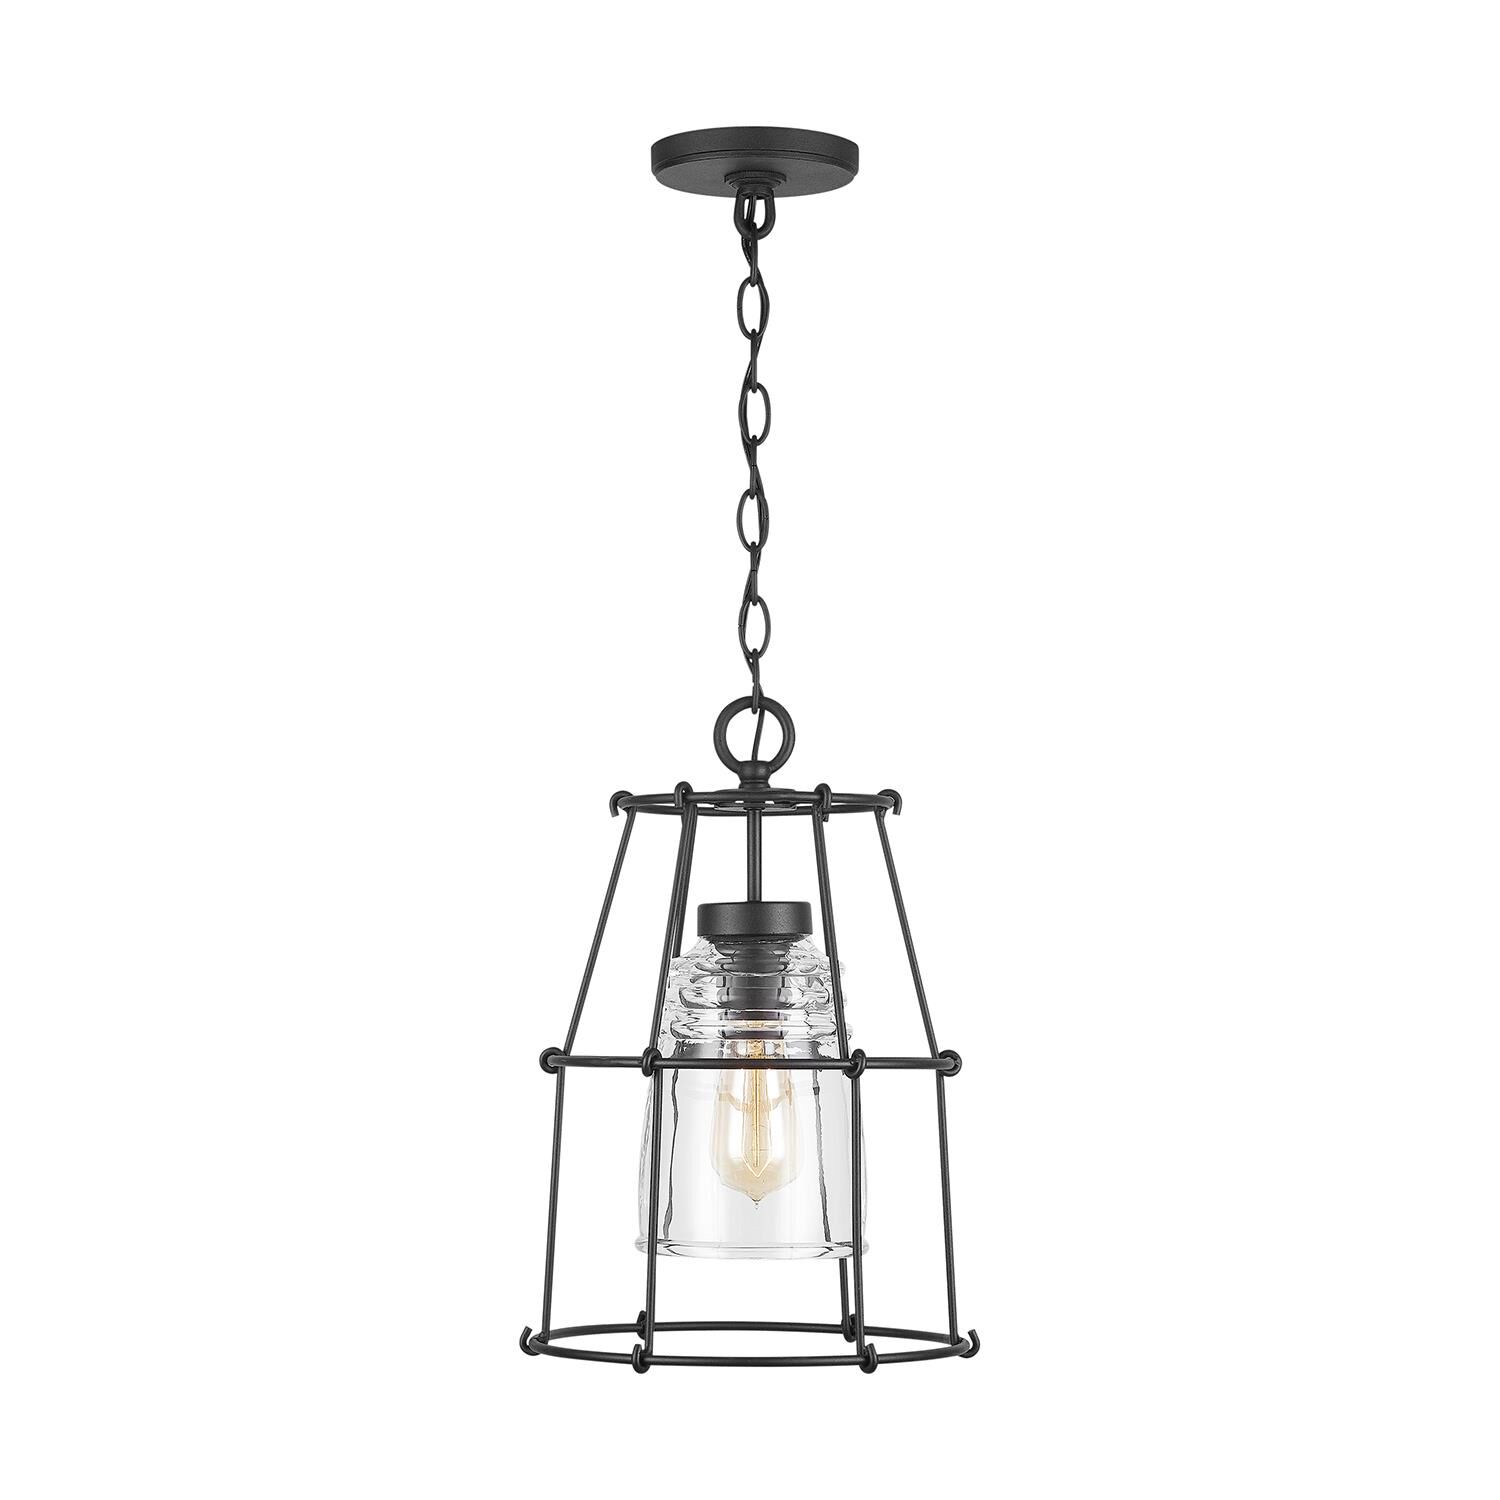 Capital Lighting Fixture Company 16 Inch Tall 1 Light Outdoor Hanging Lantern - 929711bk-462 - Rustic